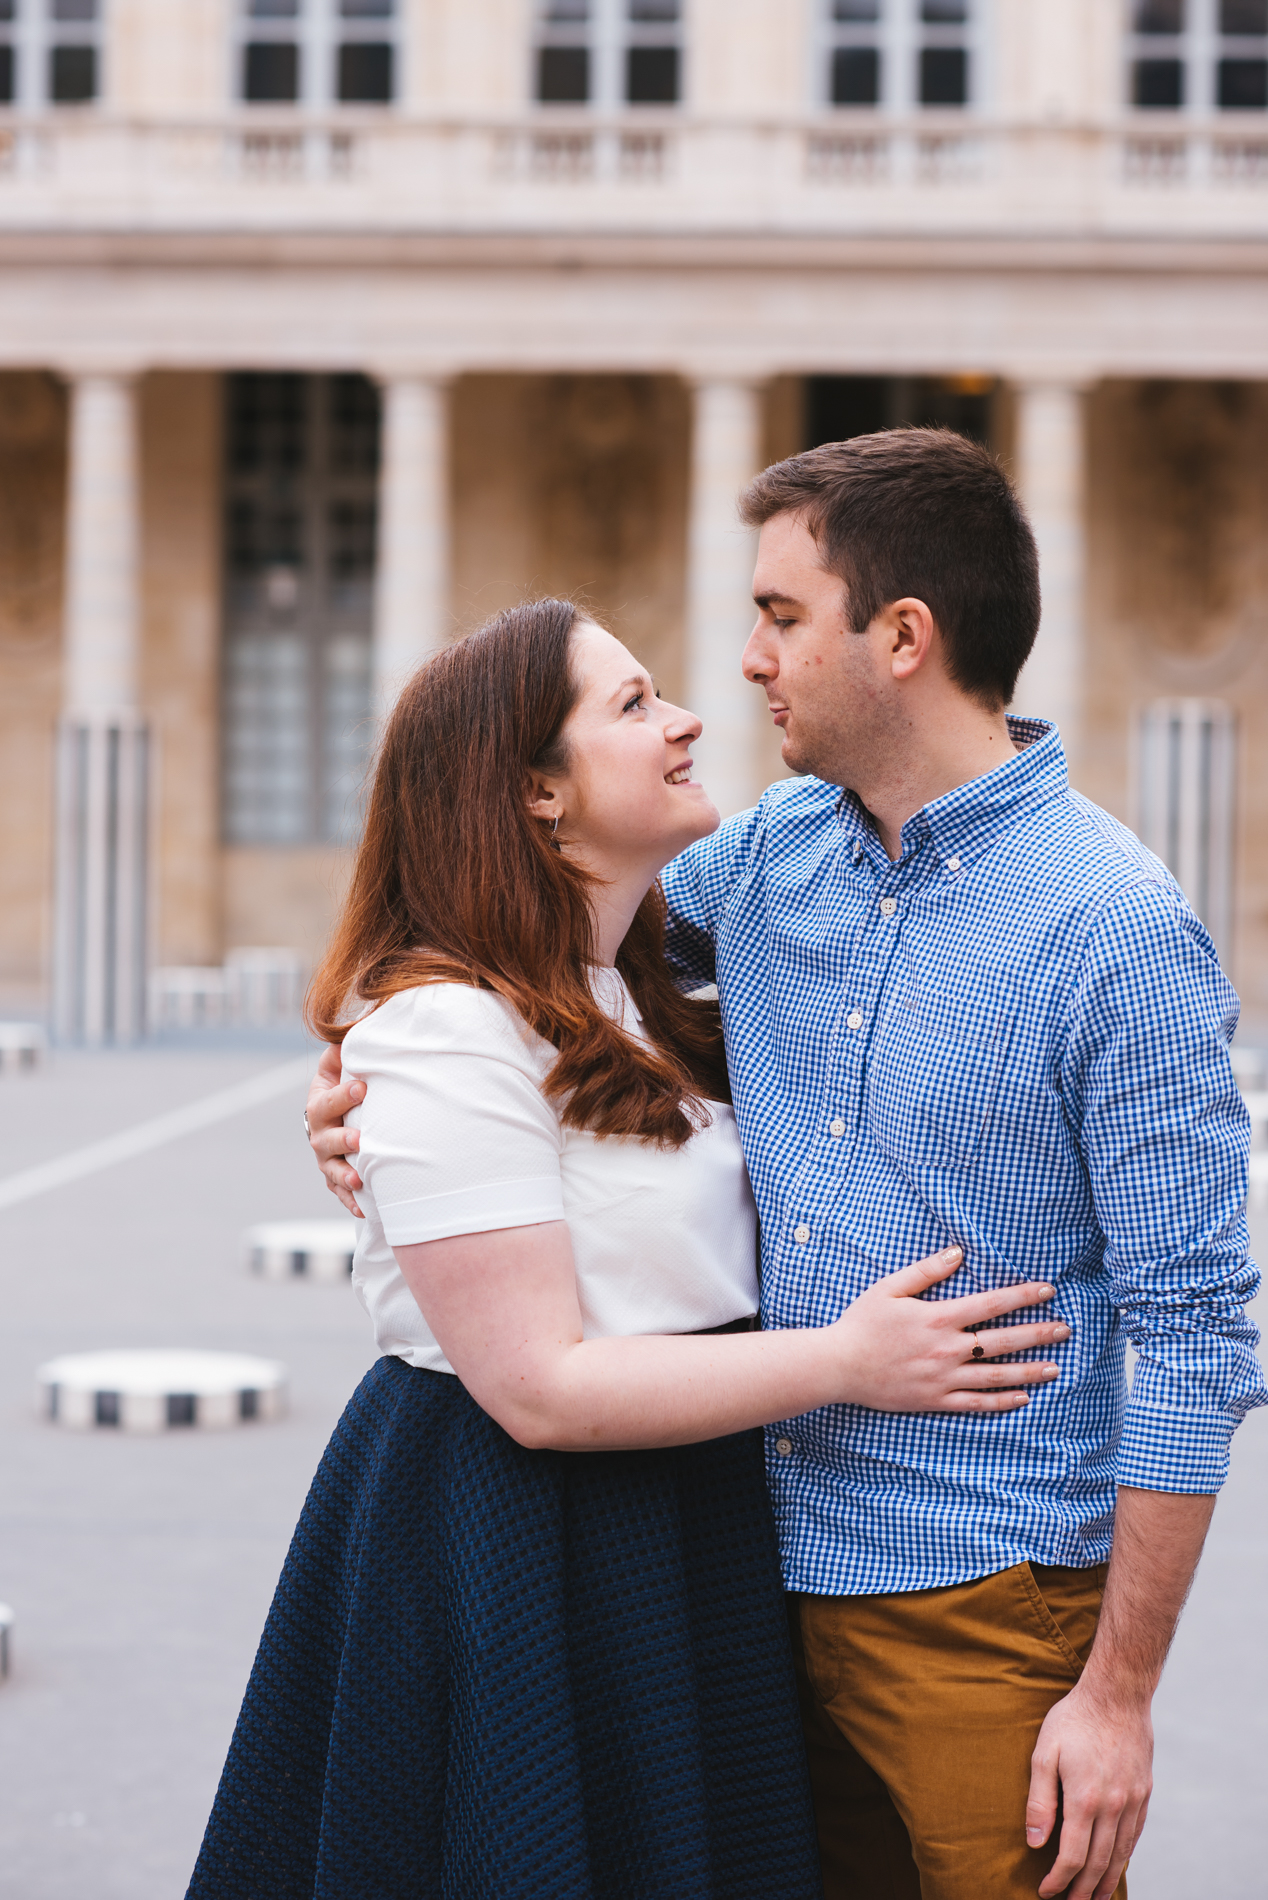 seance-engagement-paris-maldeme-photographe-palais royal-5